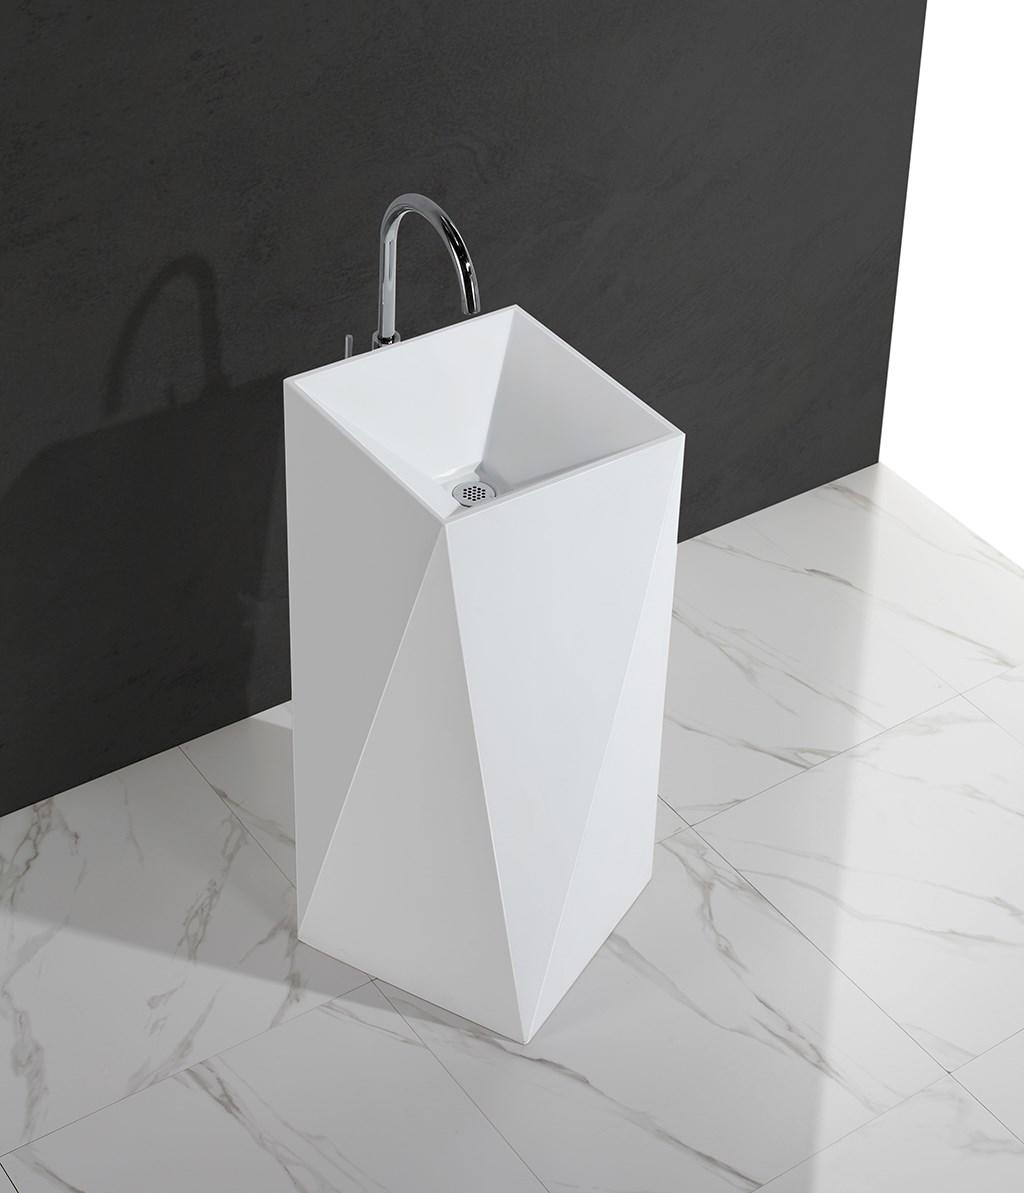 shelf bathroom sink stand design for hotel